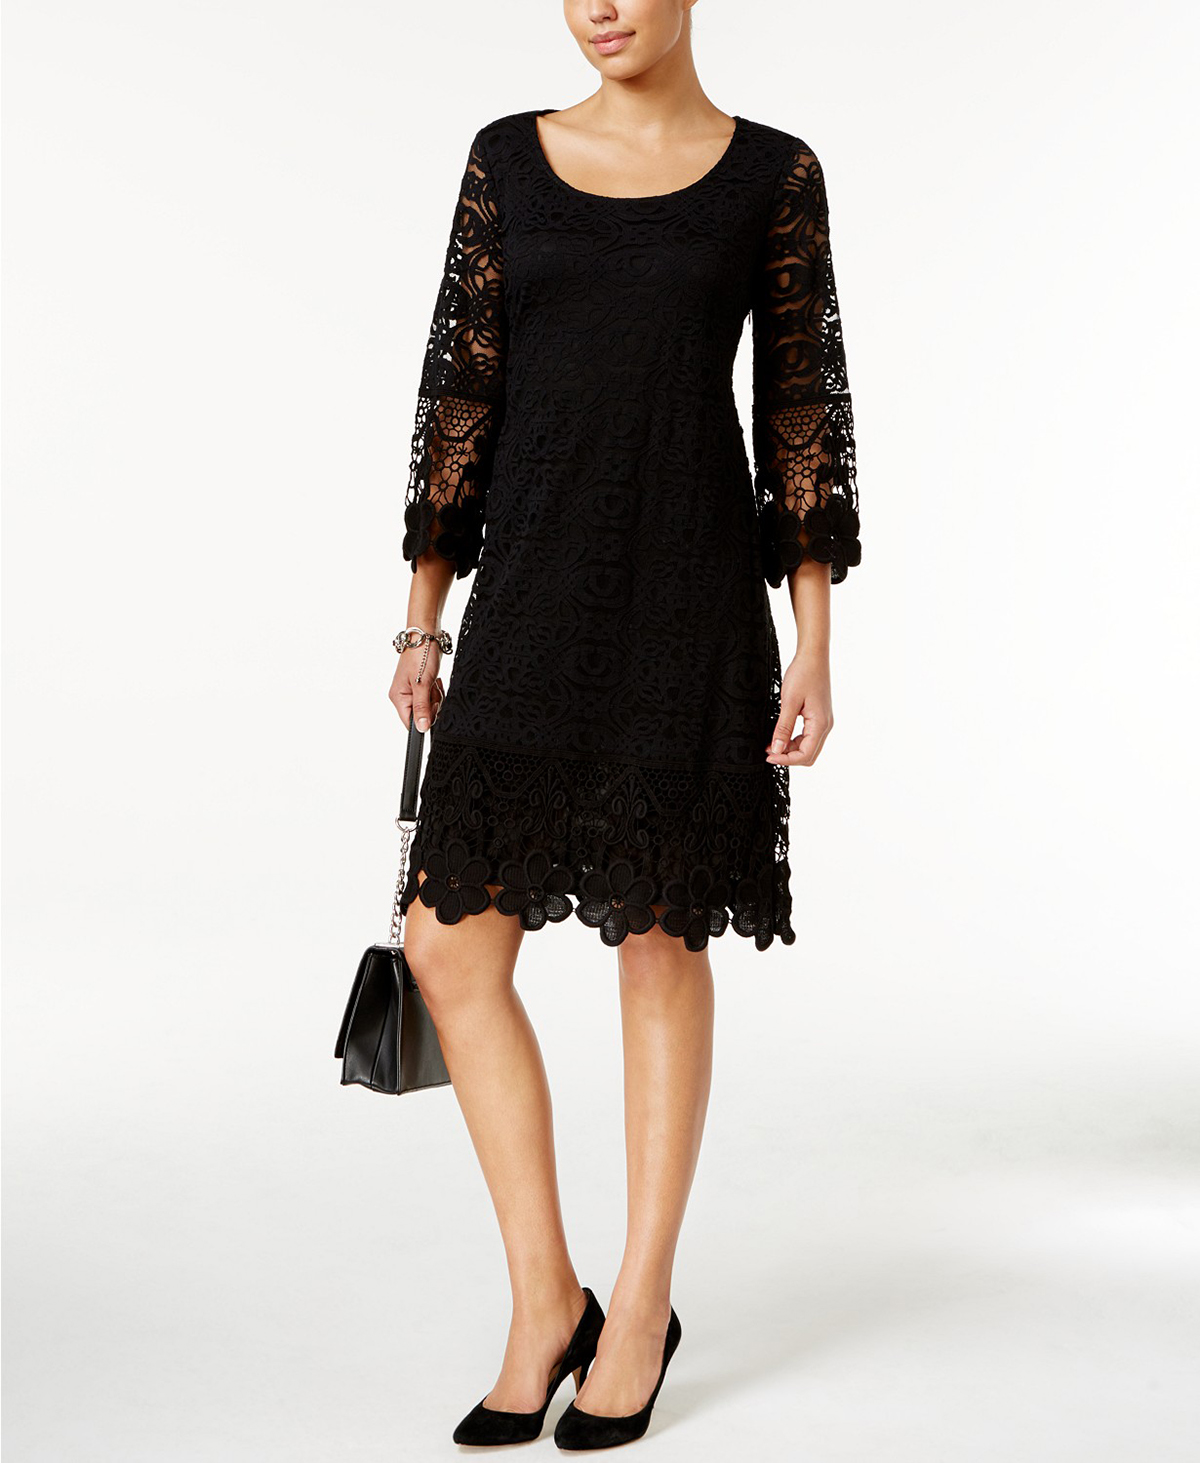 Alfani Dress Black